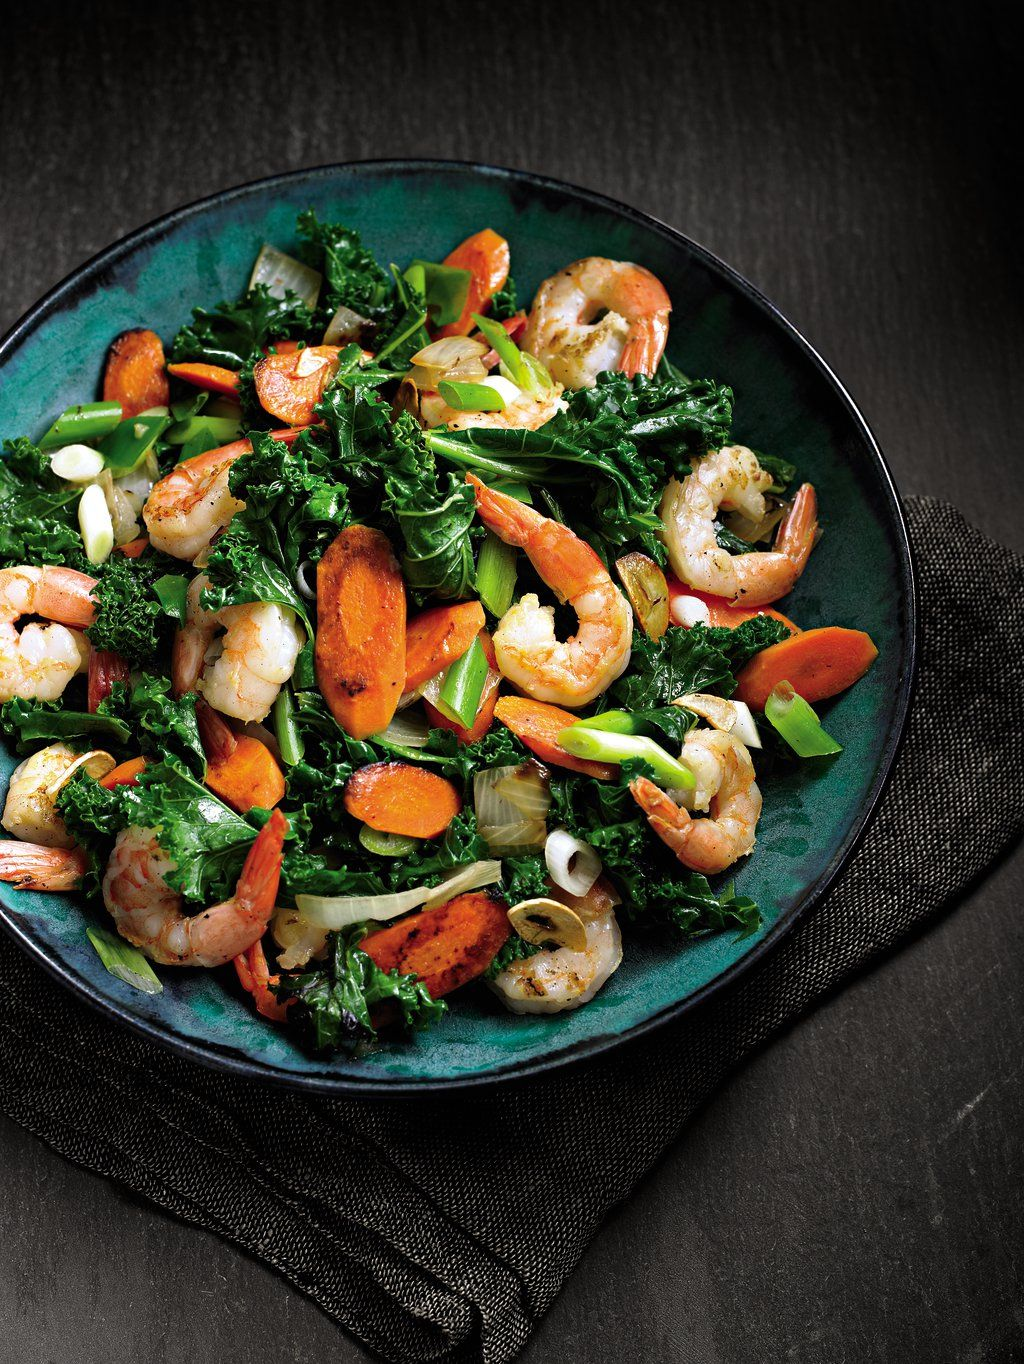 Stir Fried Kale Seafood